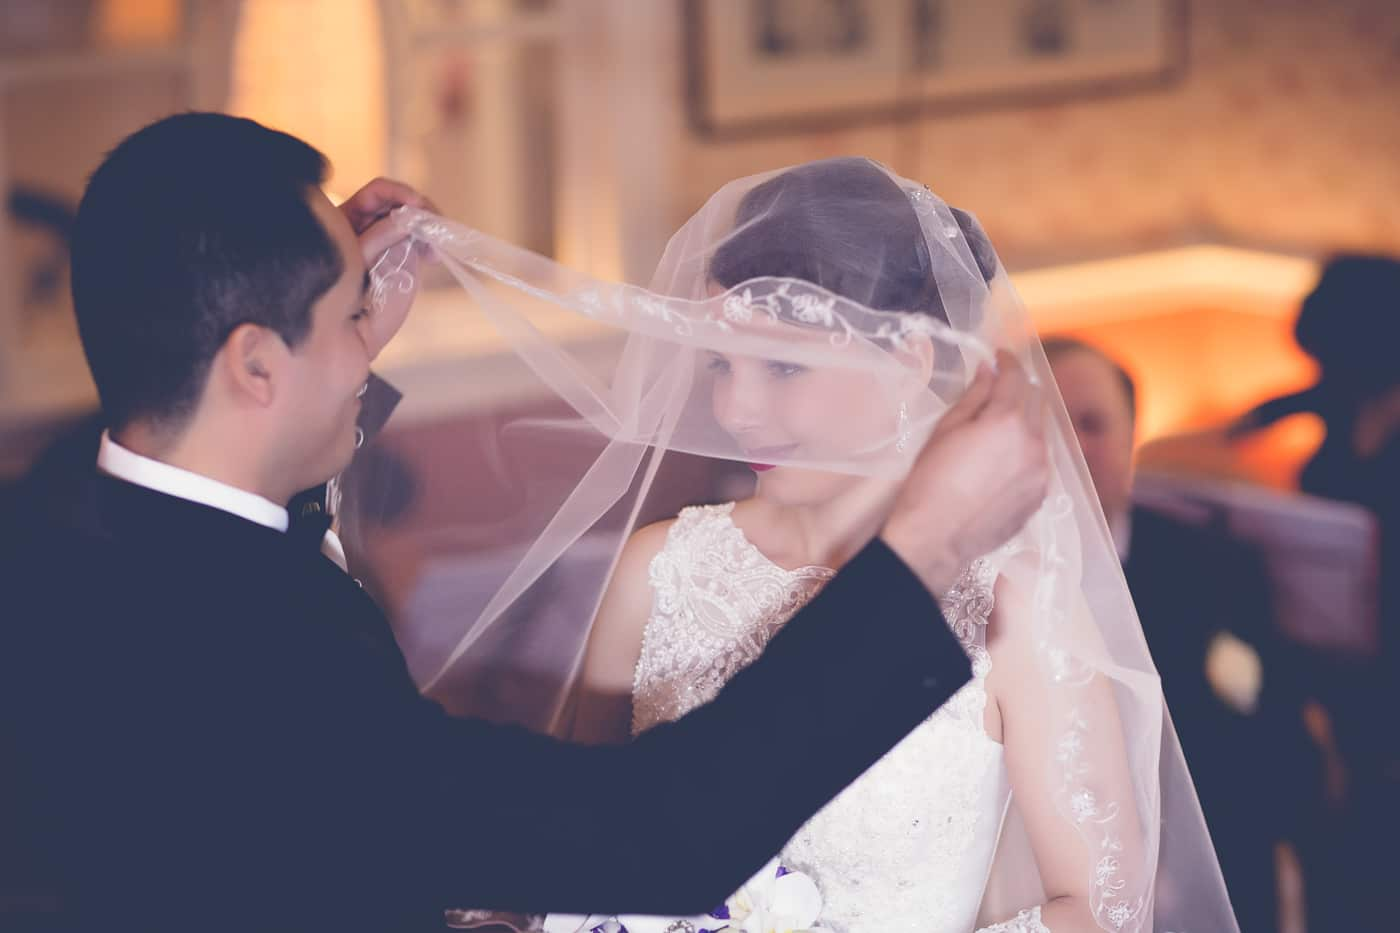 The groom is lifting her veil during the ceremony